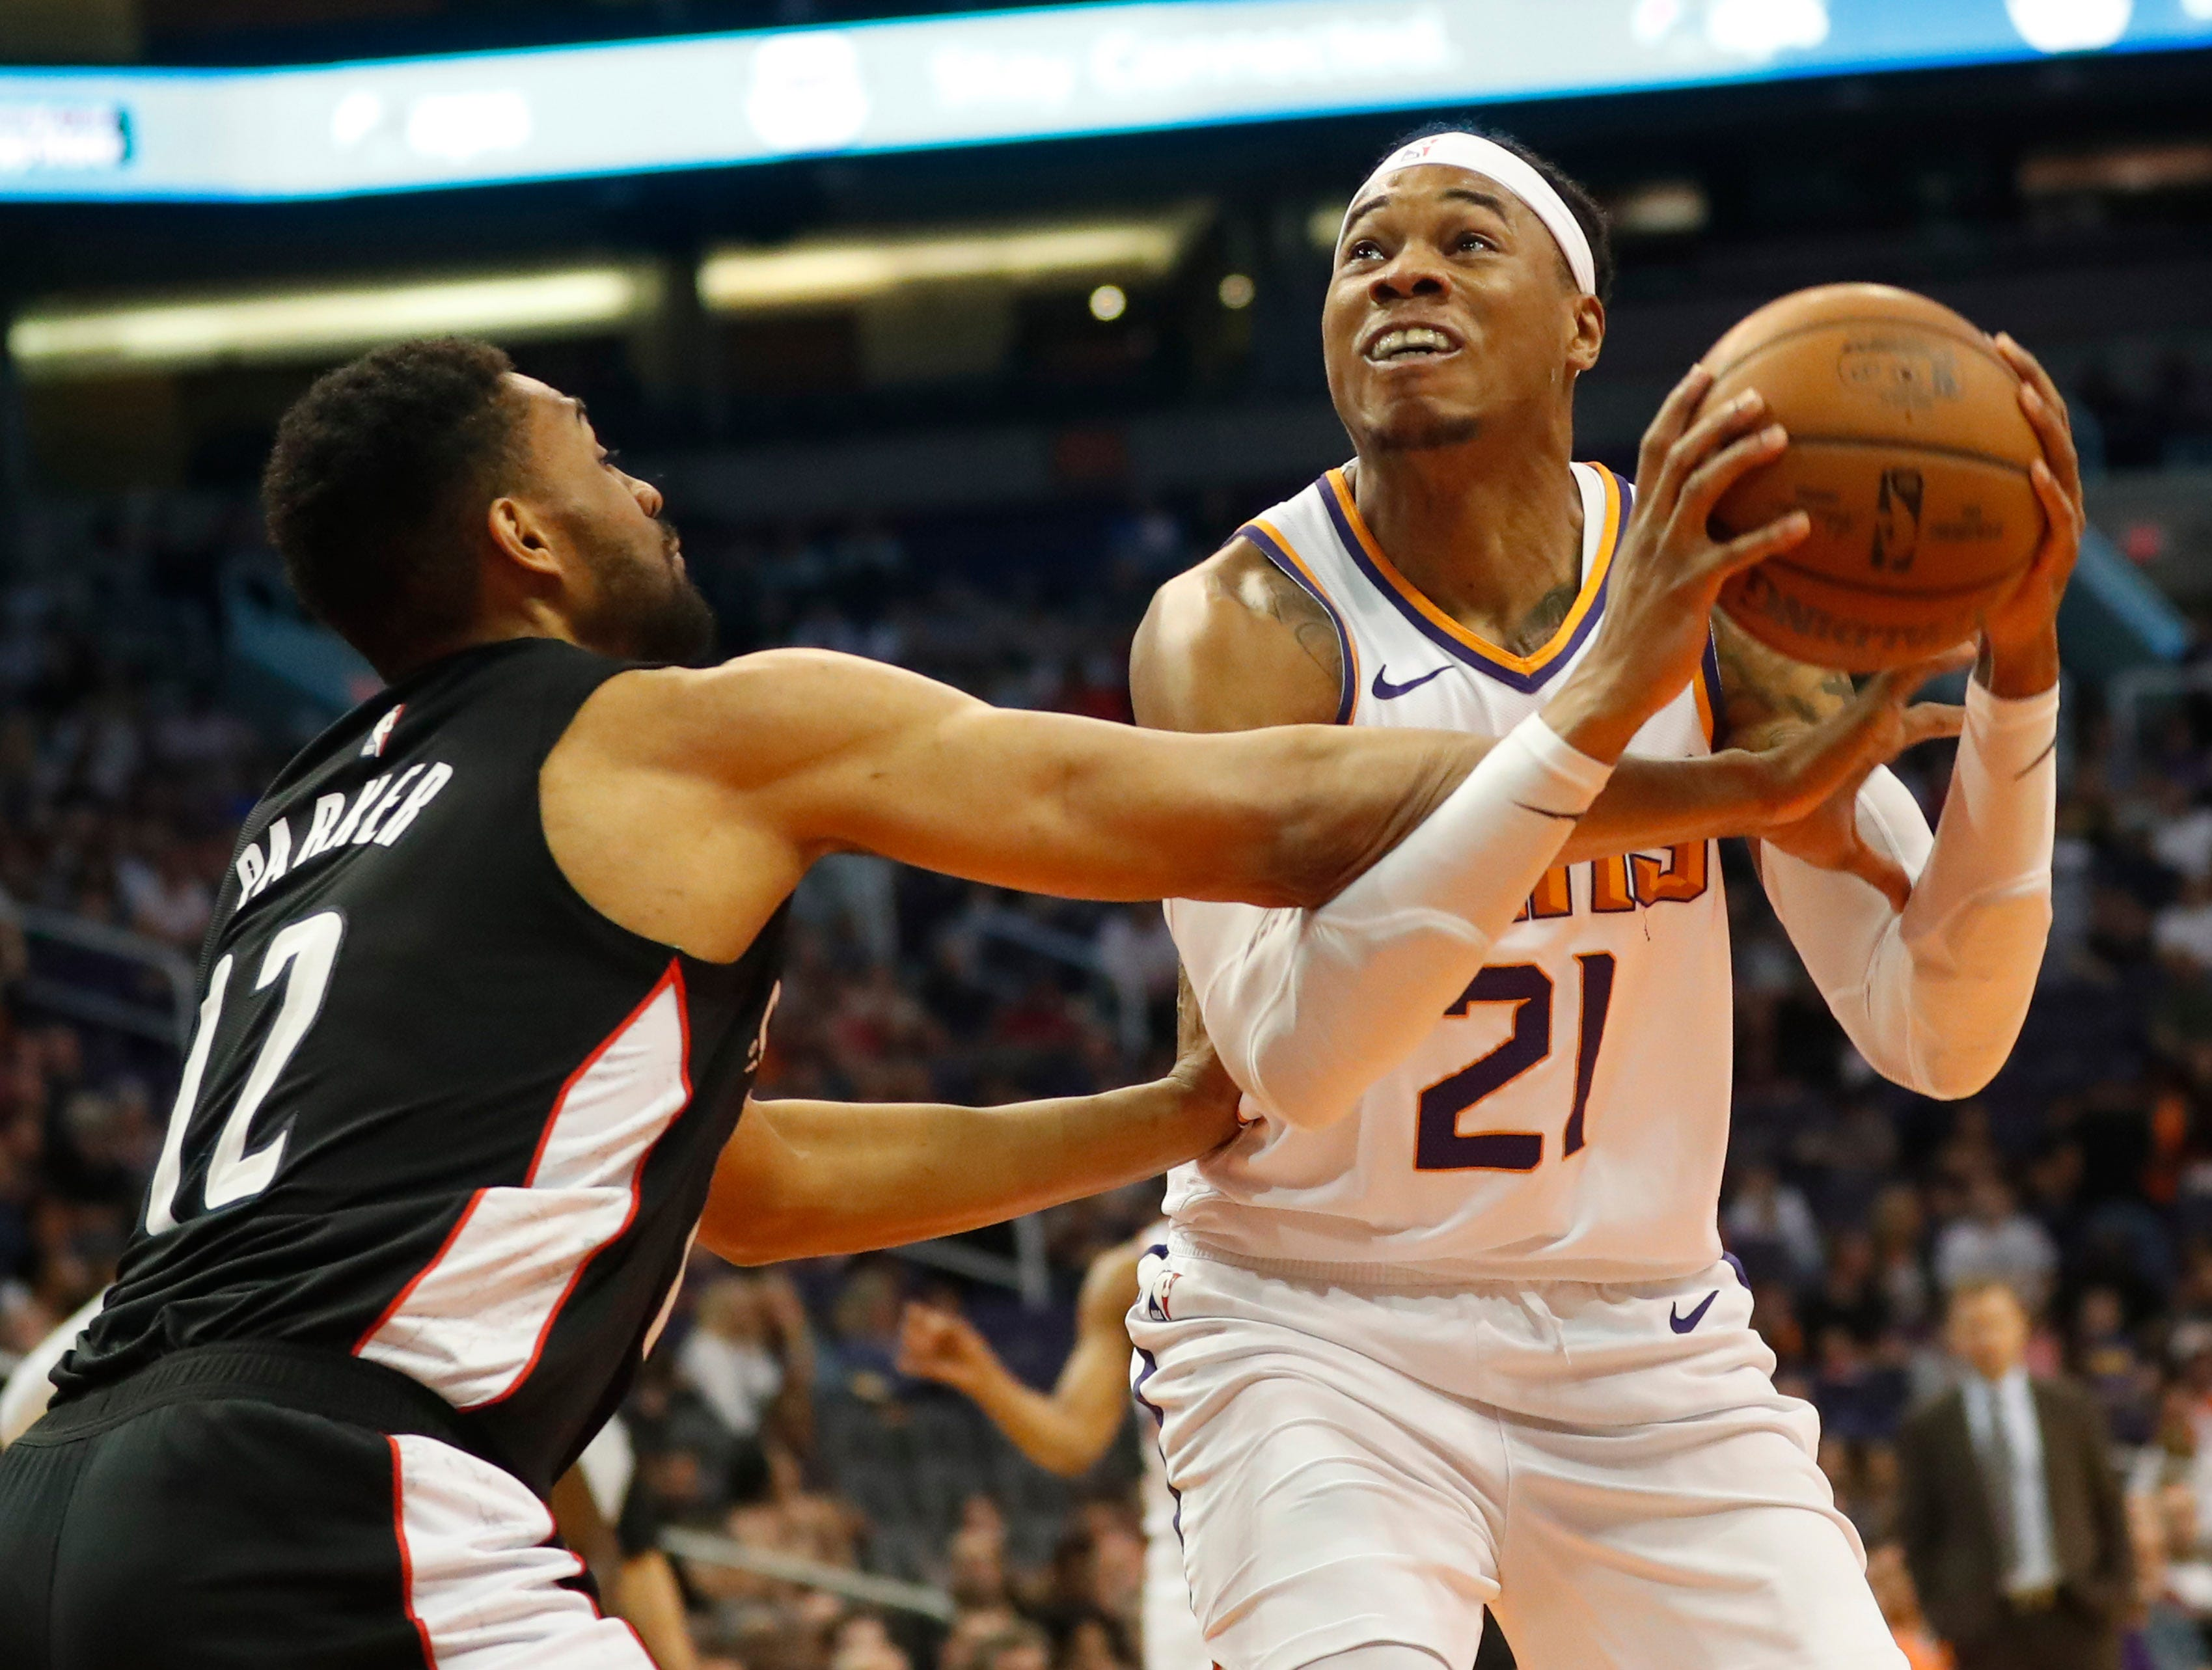 Phoenix Suns forward Richaun Holmes (21) is fouled by Washington Wizards forward Jabari Parker (12) during the first quarter in Phoenix March 27, 2019.